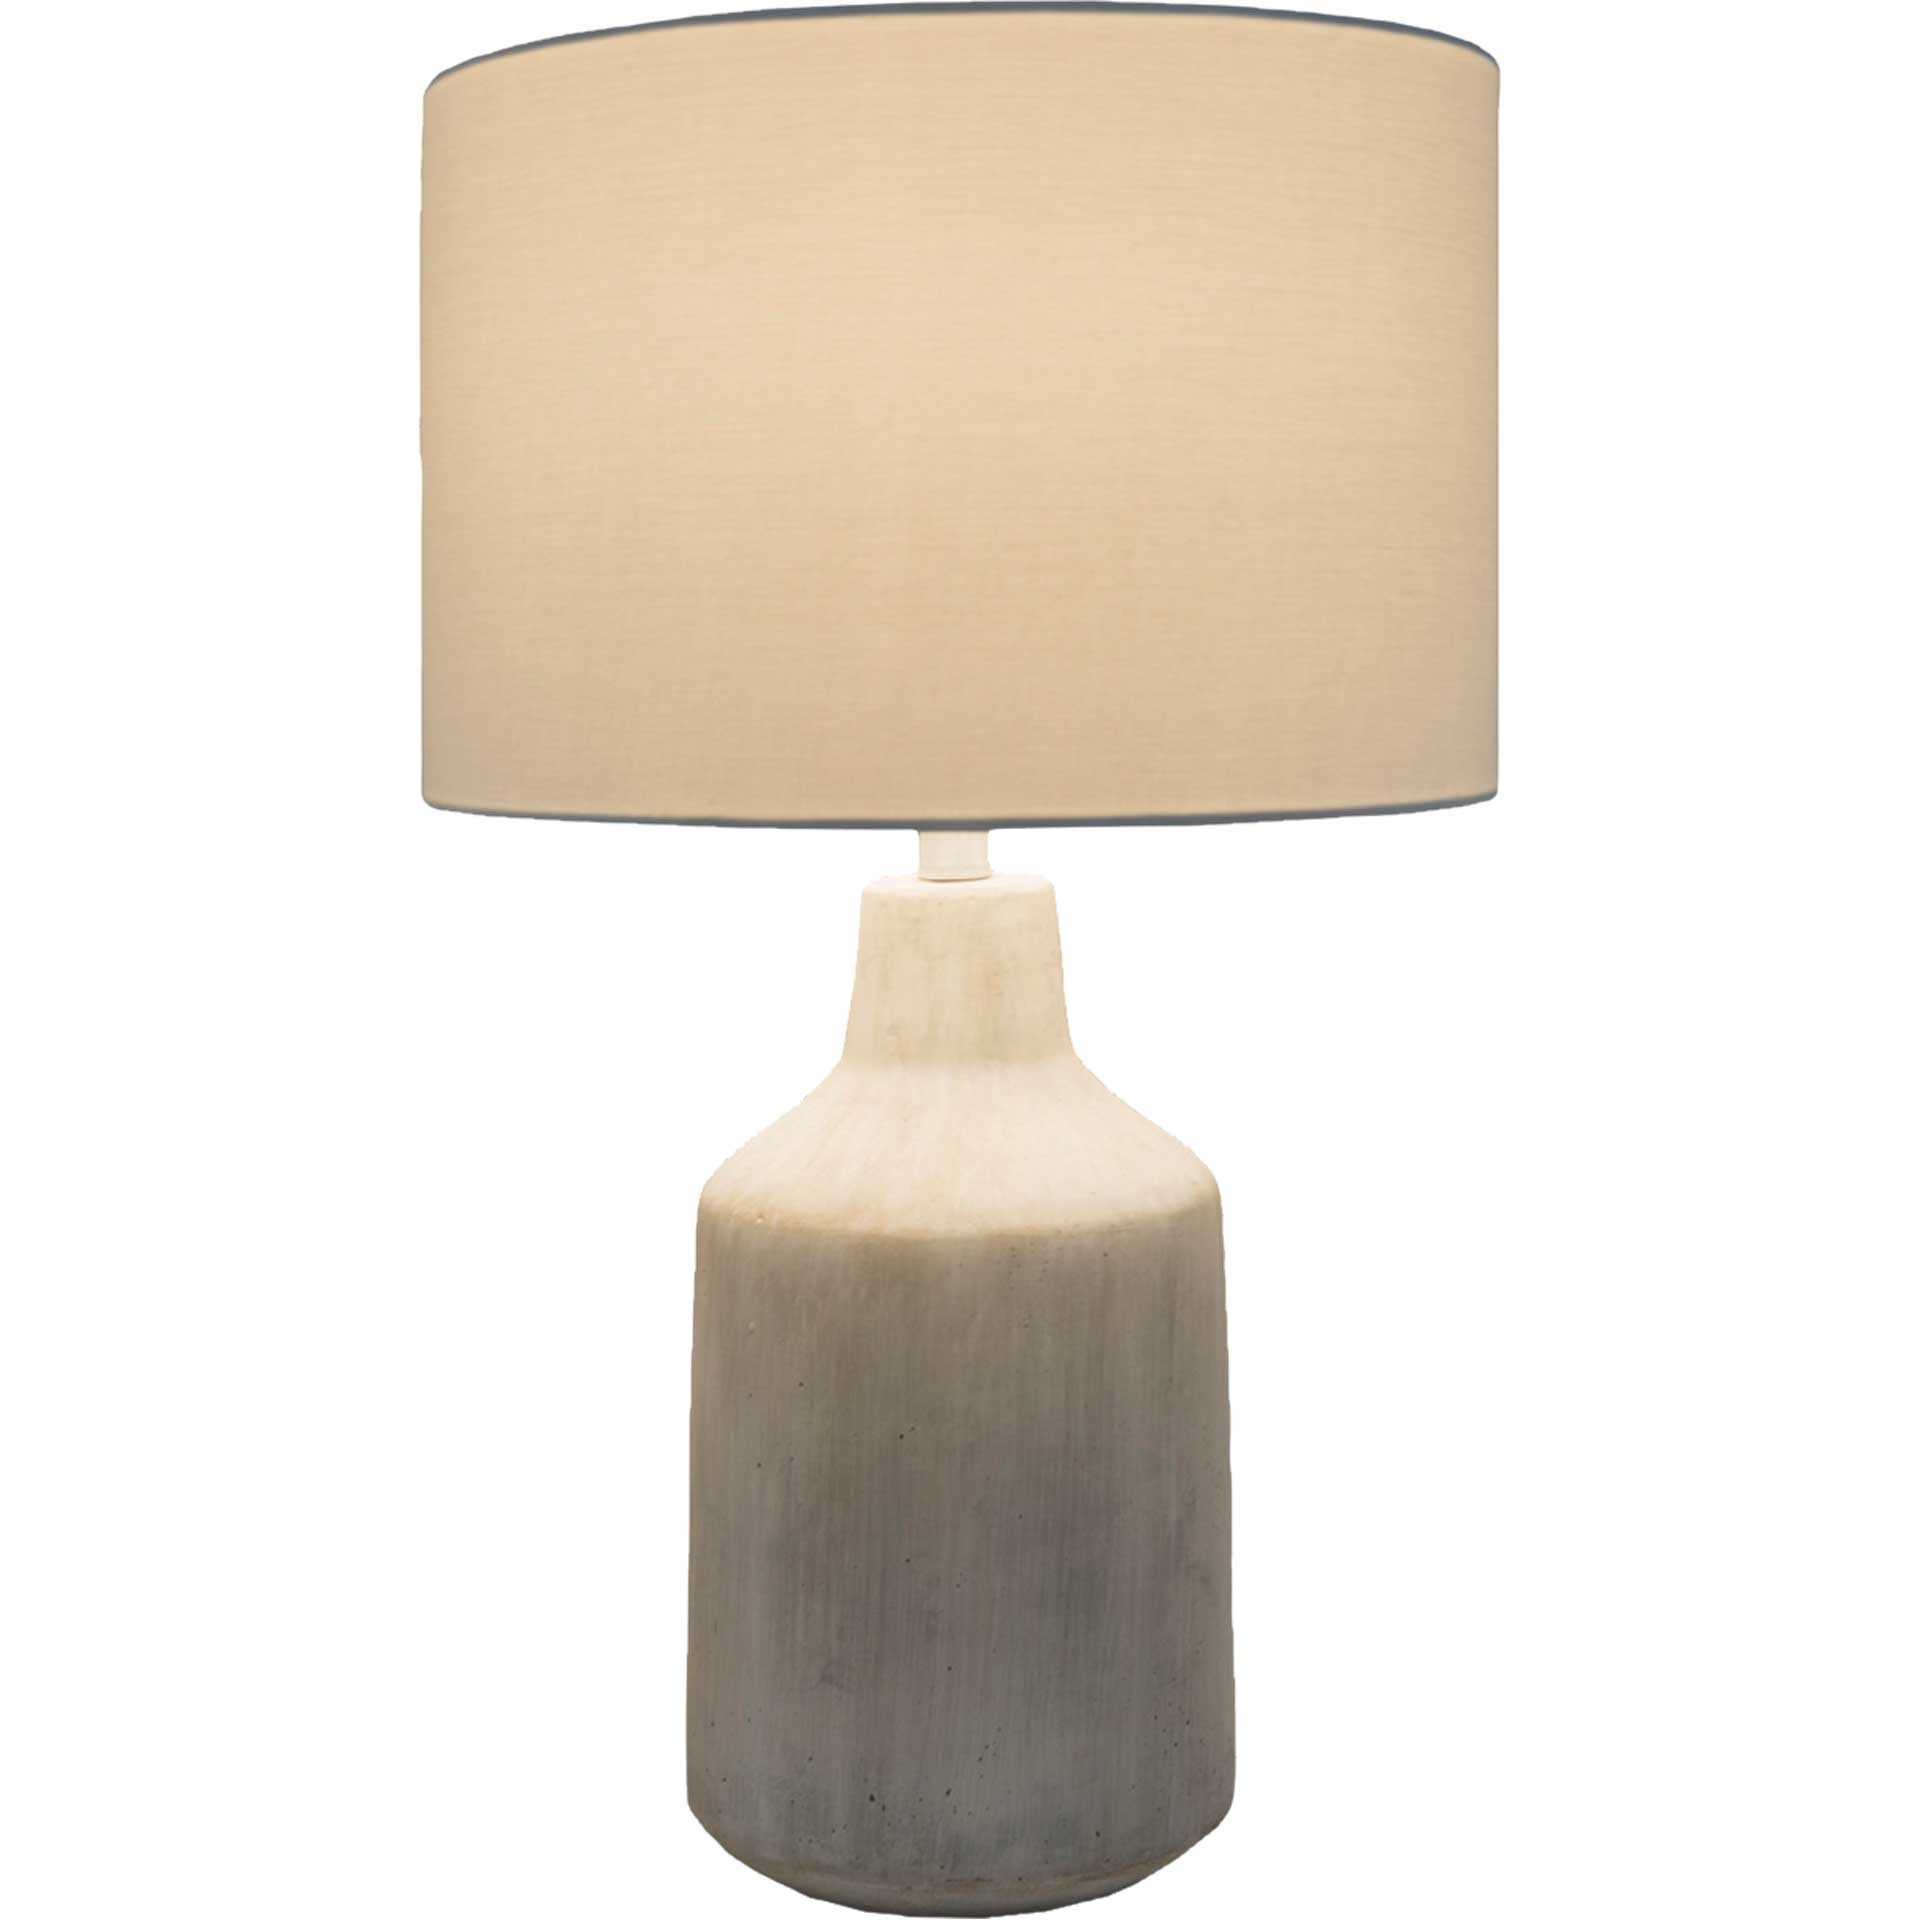 Forrest Table Lamp Ivory/Light Gray/Beige